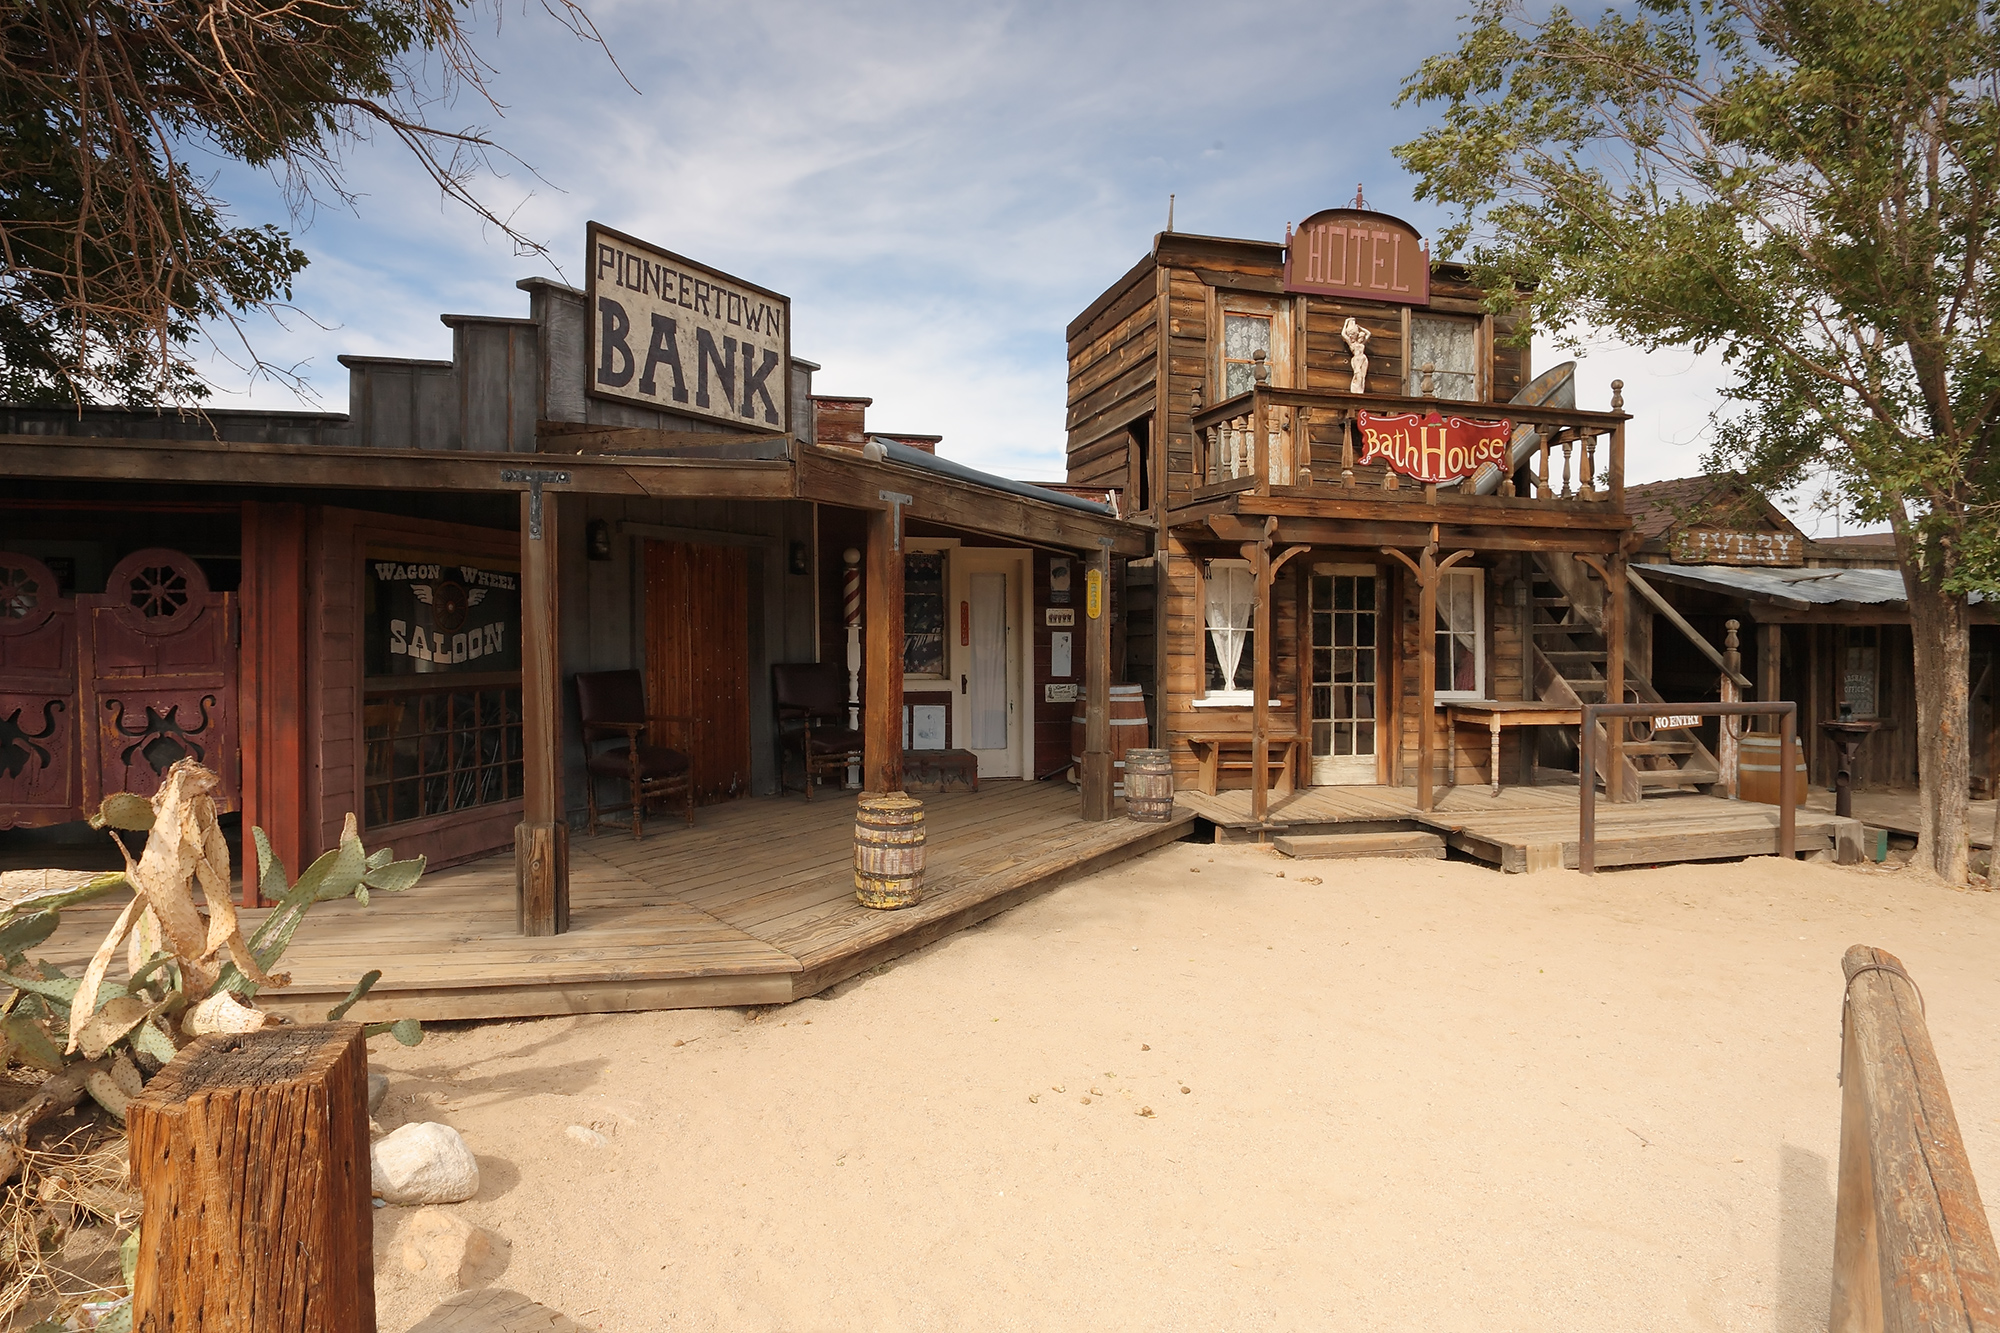 ... saloon and bath house.jpg - Wikipedia, the free encyclopedia